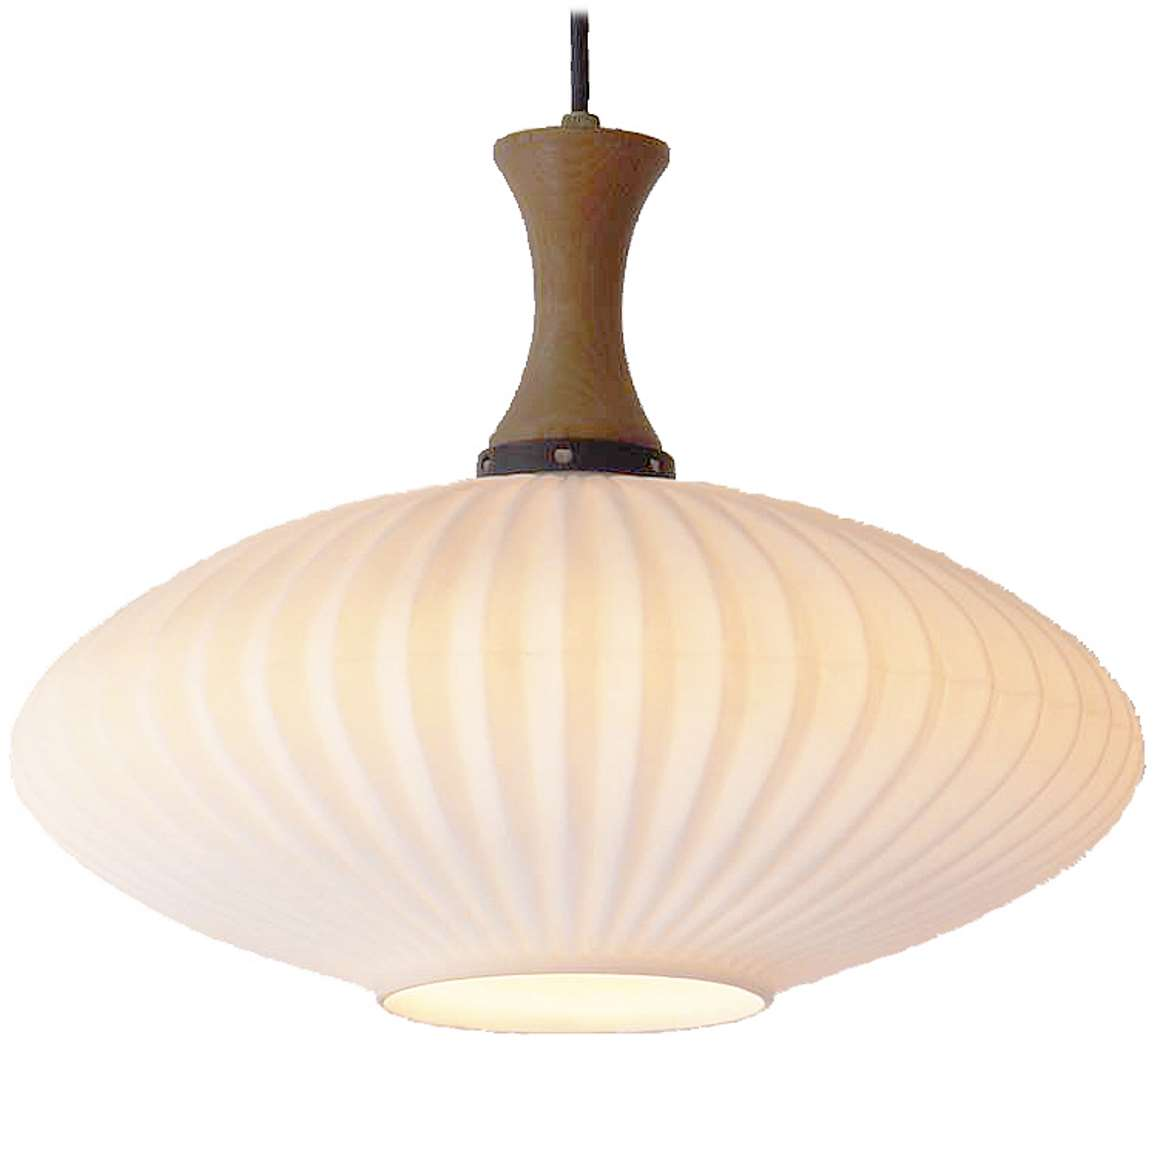 1950s Scandinavian Ribbed Glass Pendant Lamp